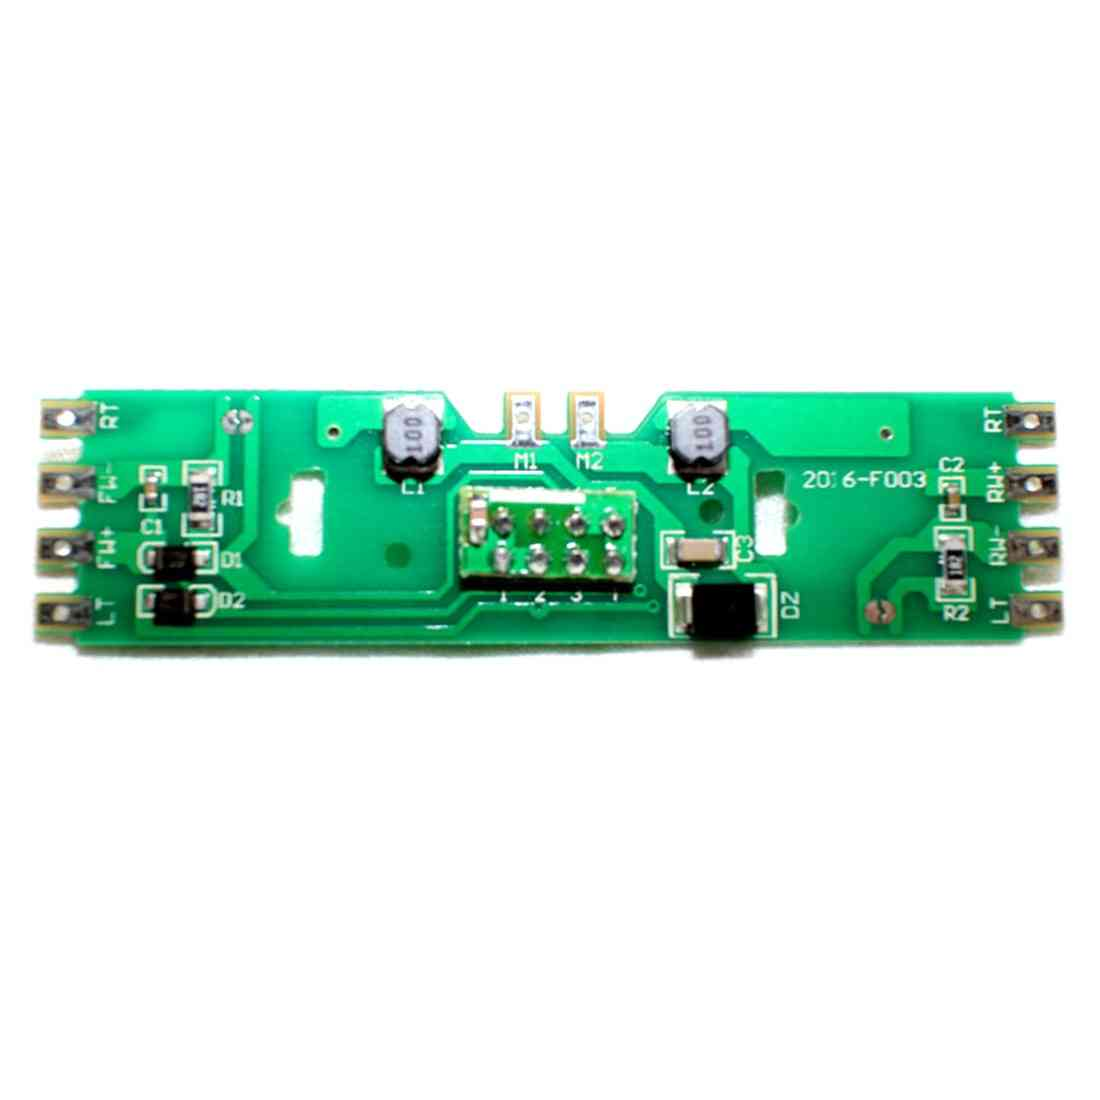 1:87 Pcb Board Part With Resistance For Ho Scale